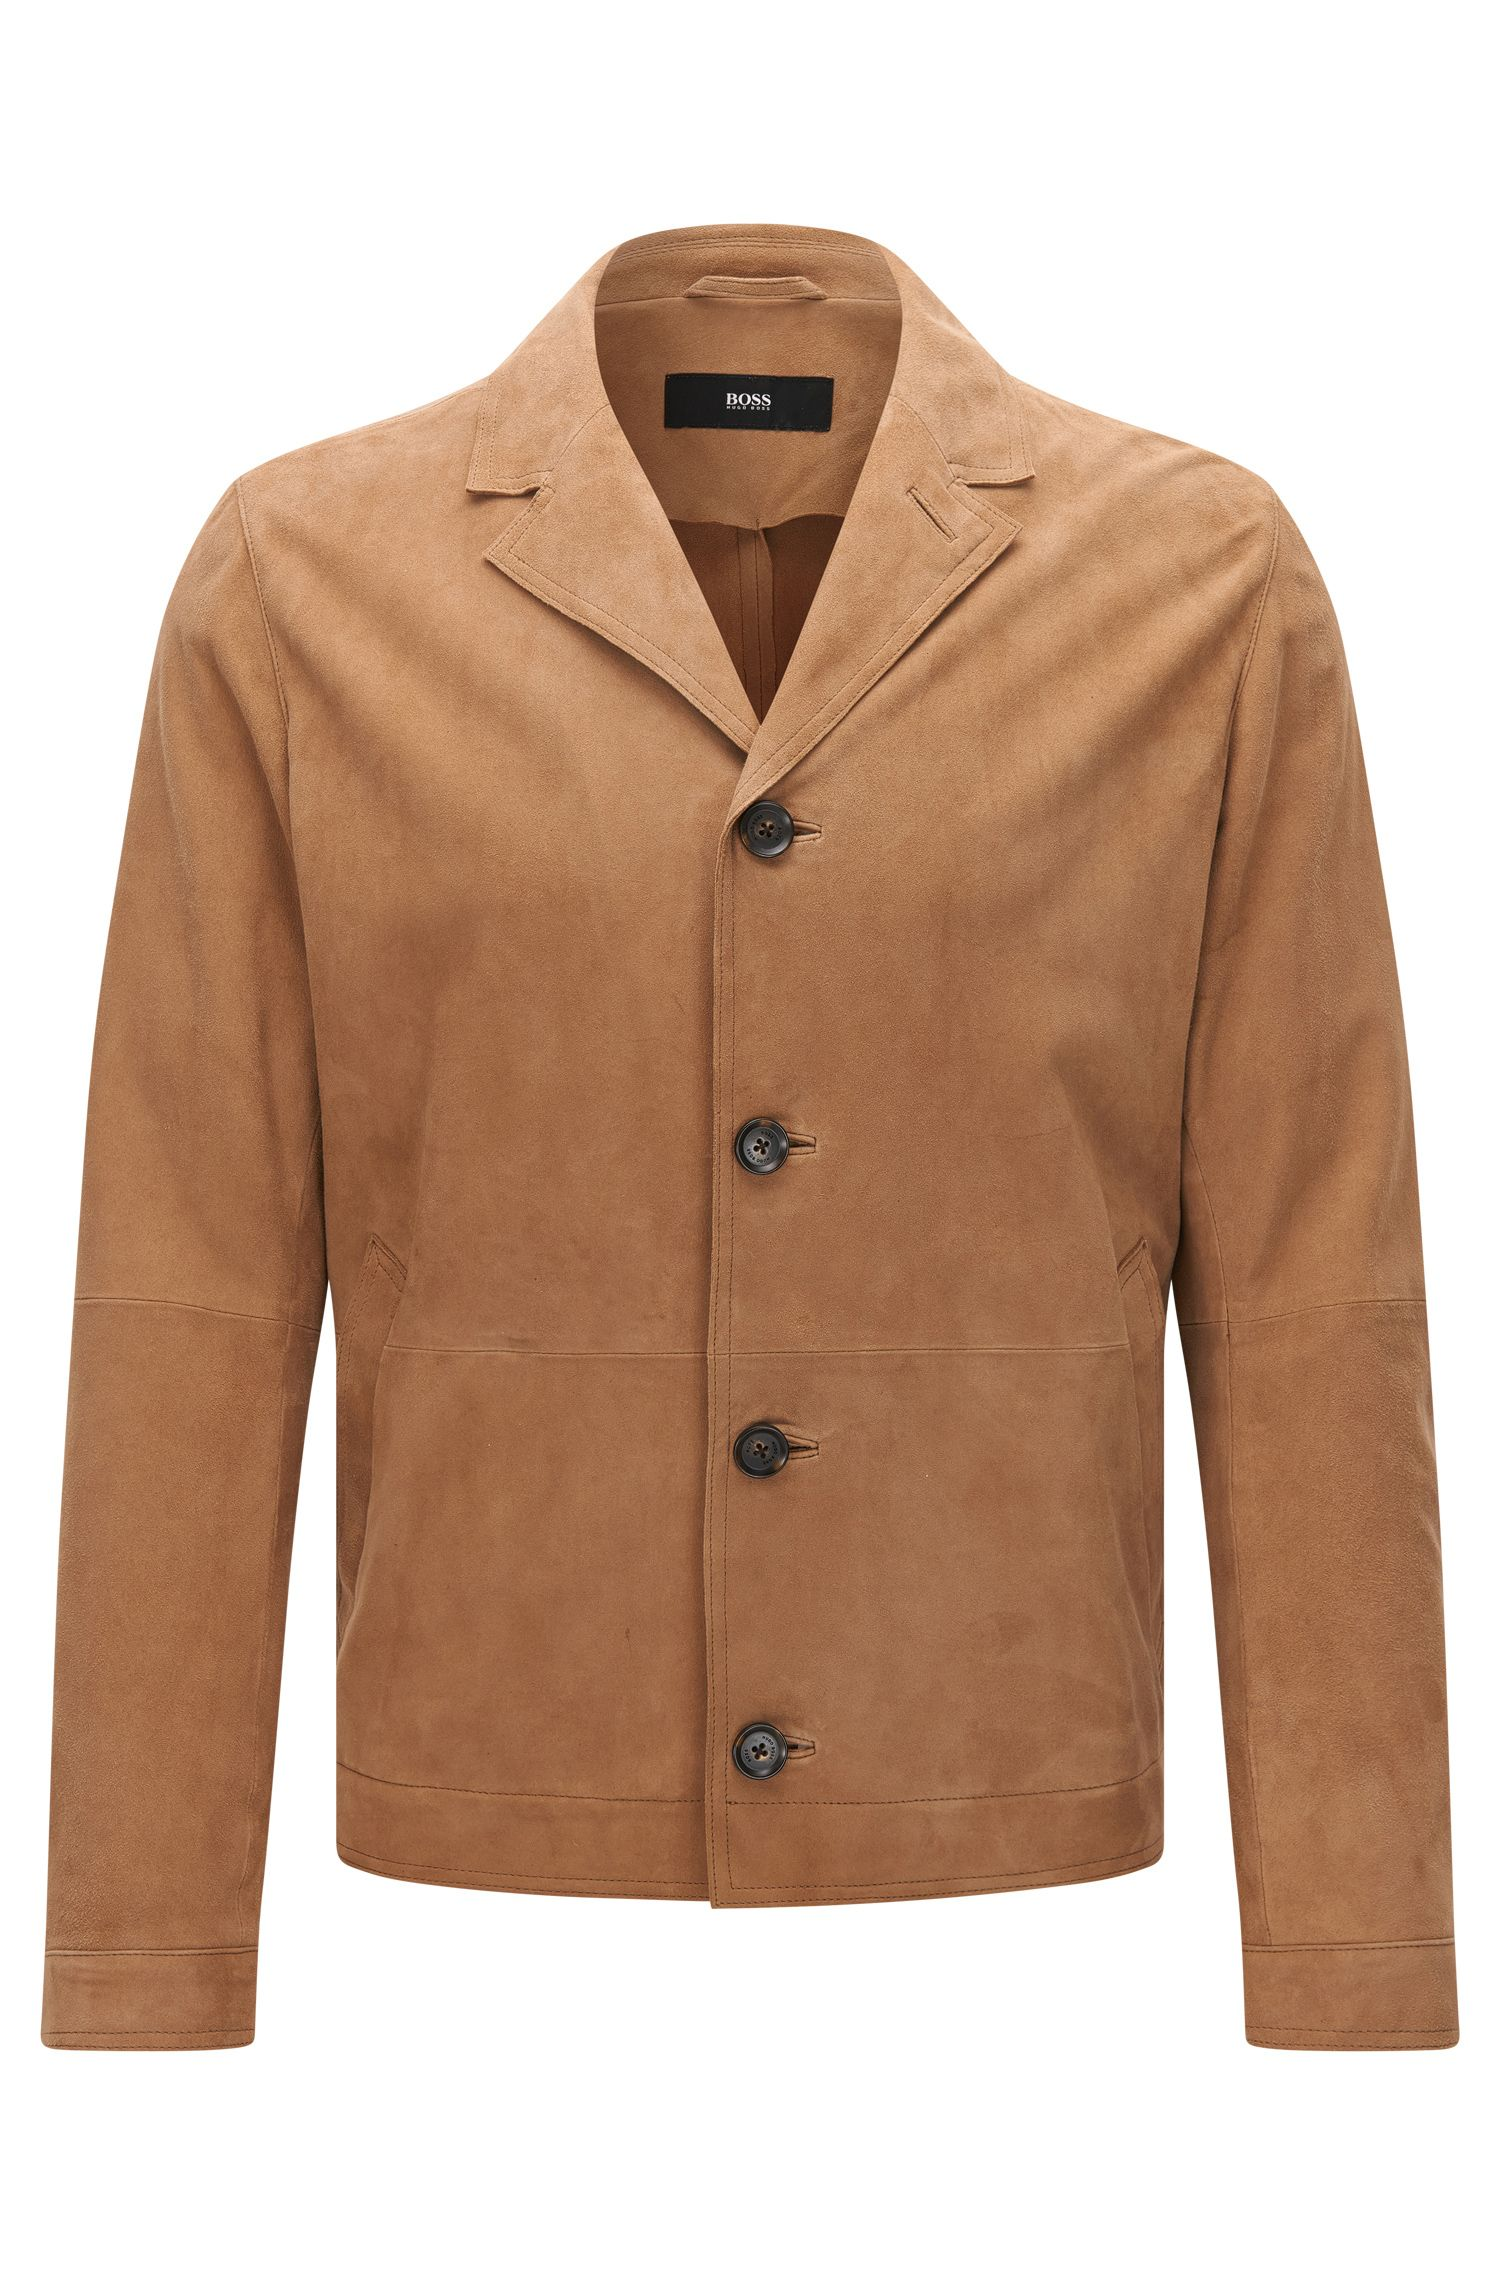 Regular-fit suede jacket with notch lapel collar